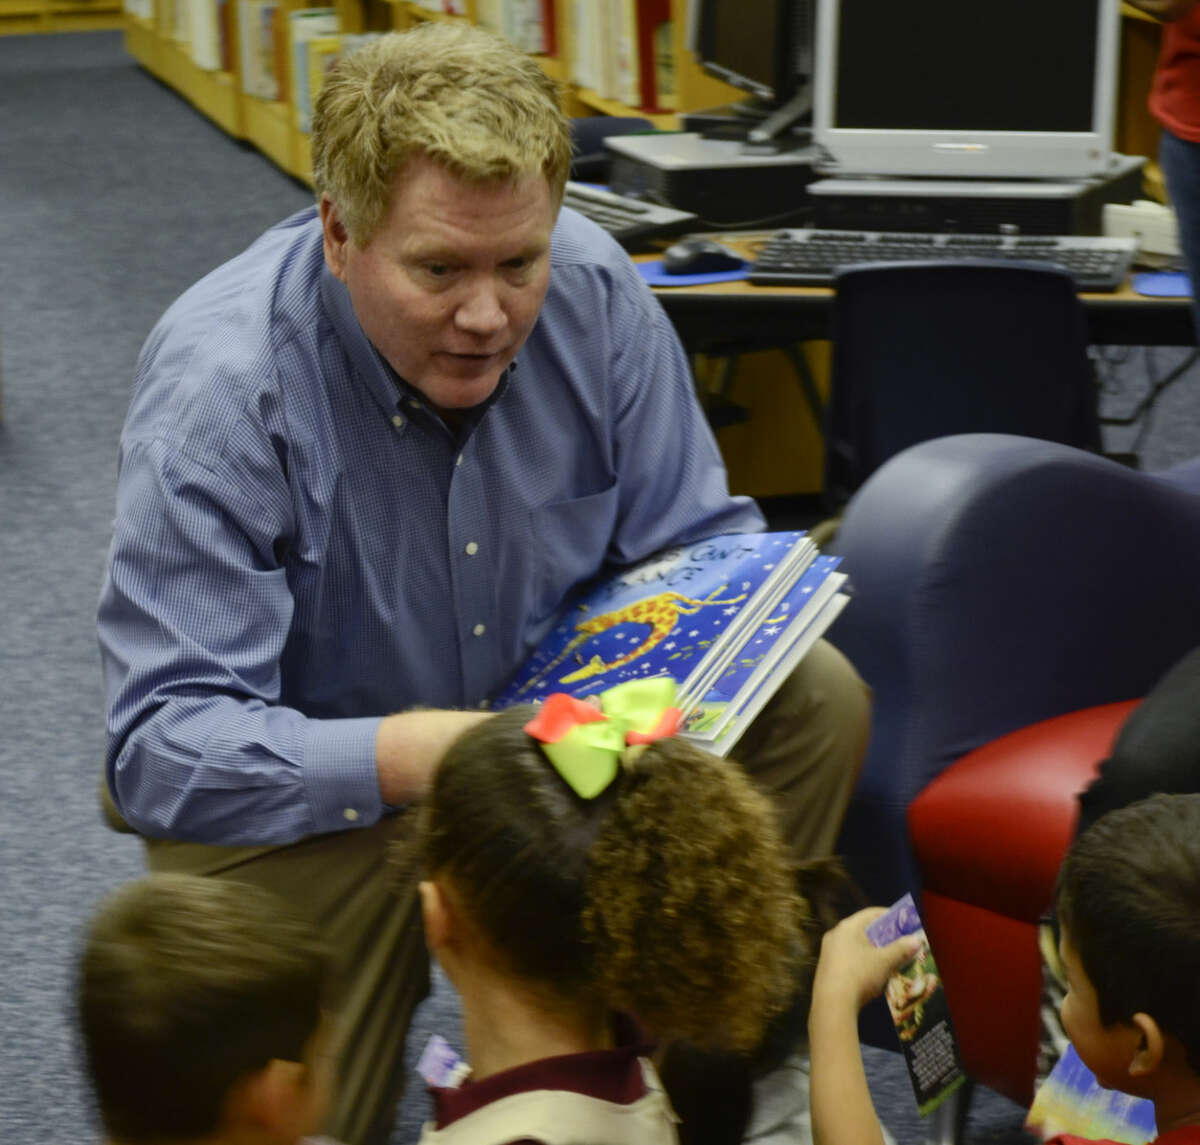 """Publisher Mike Distelhorst hands out copies of """"Giraffes Can't Dance"""" to first-graders at Crockett Elementary in September 2013 as part of Project Literacy. Distelhorst will be leaving the Reporter-Telegram next week for a newspaper group in North Carolina."""